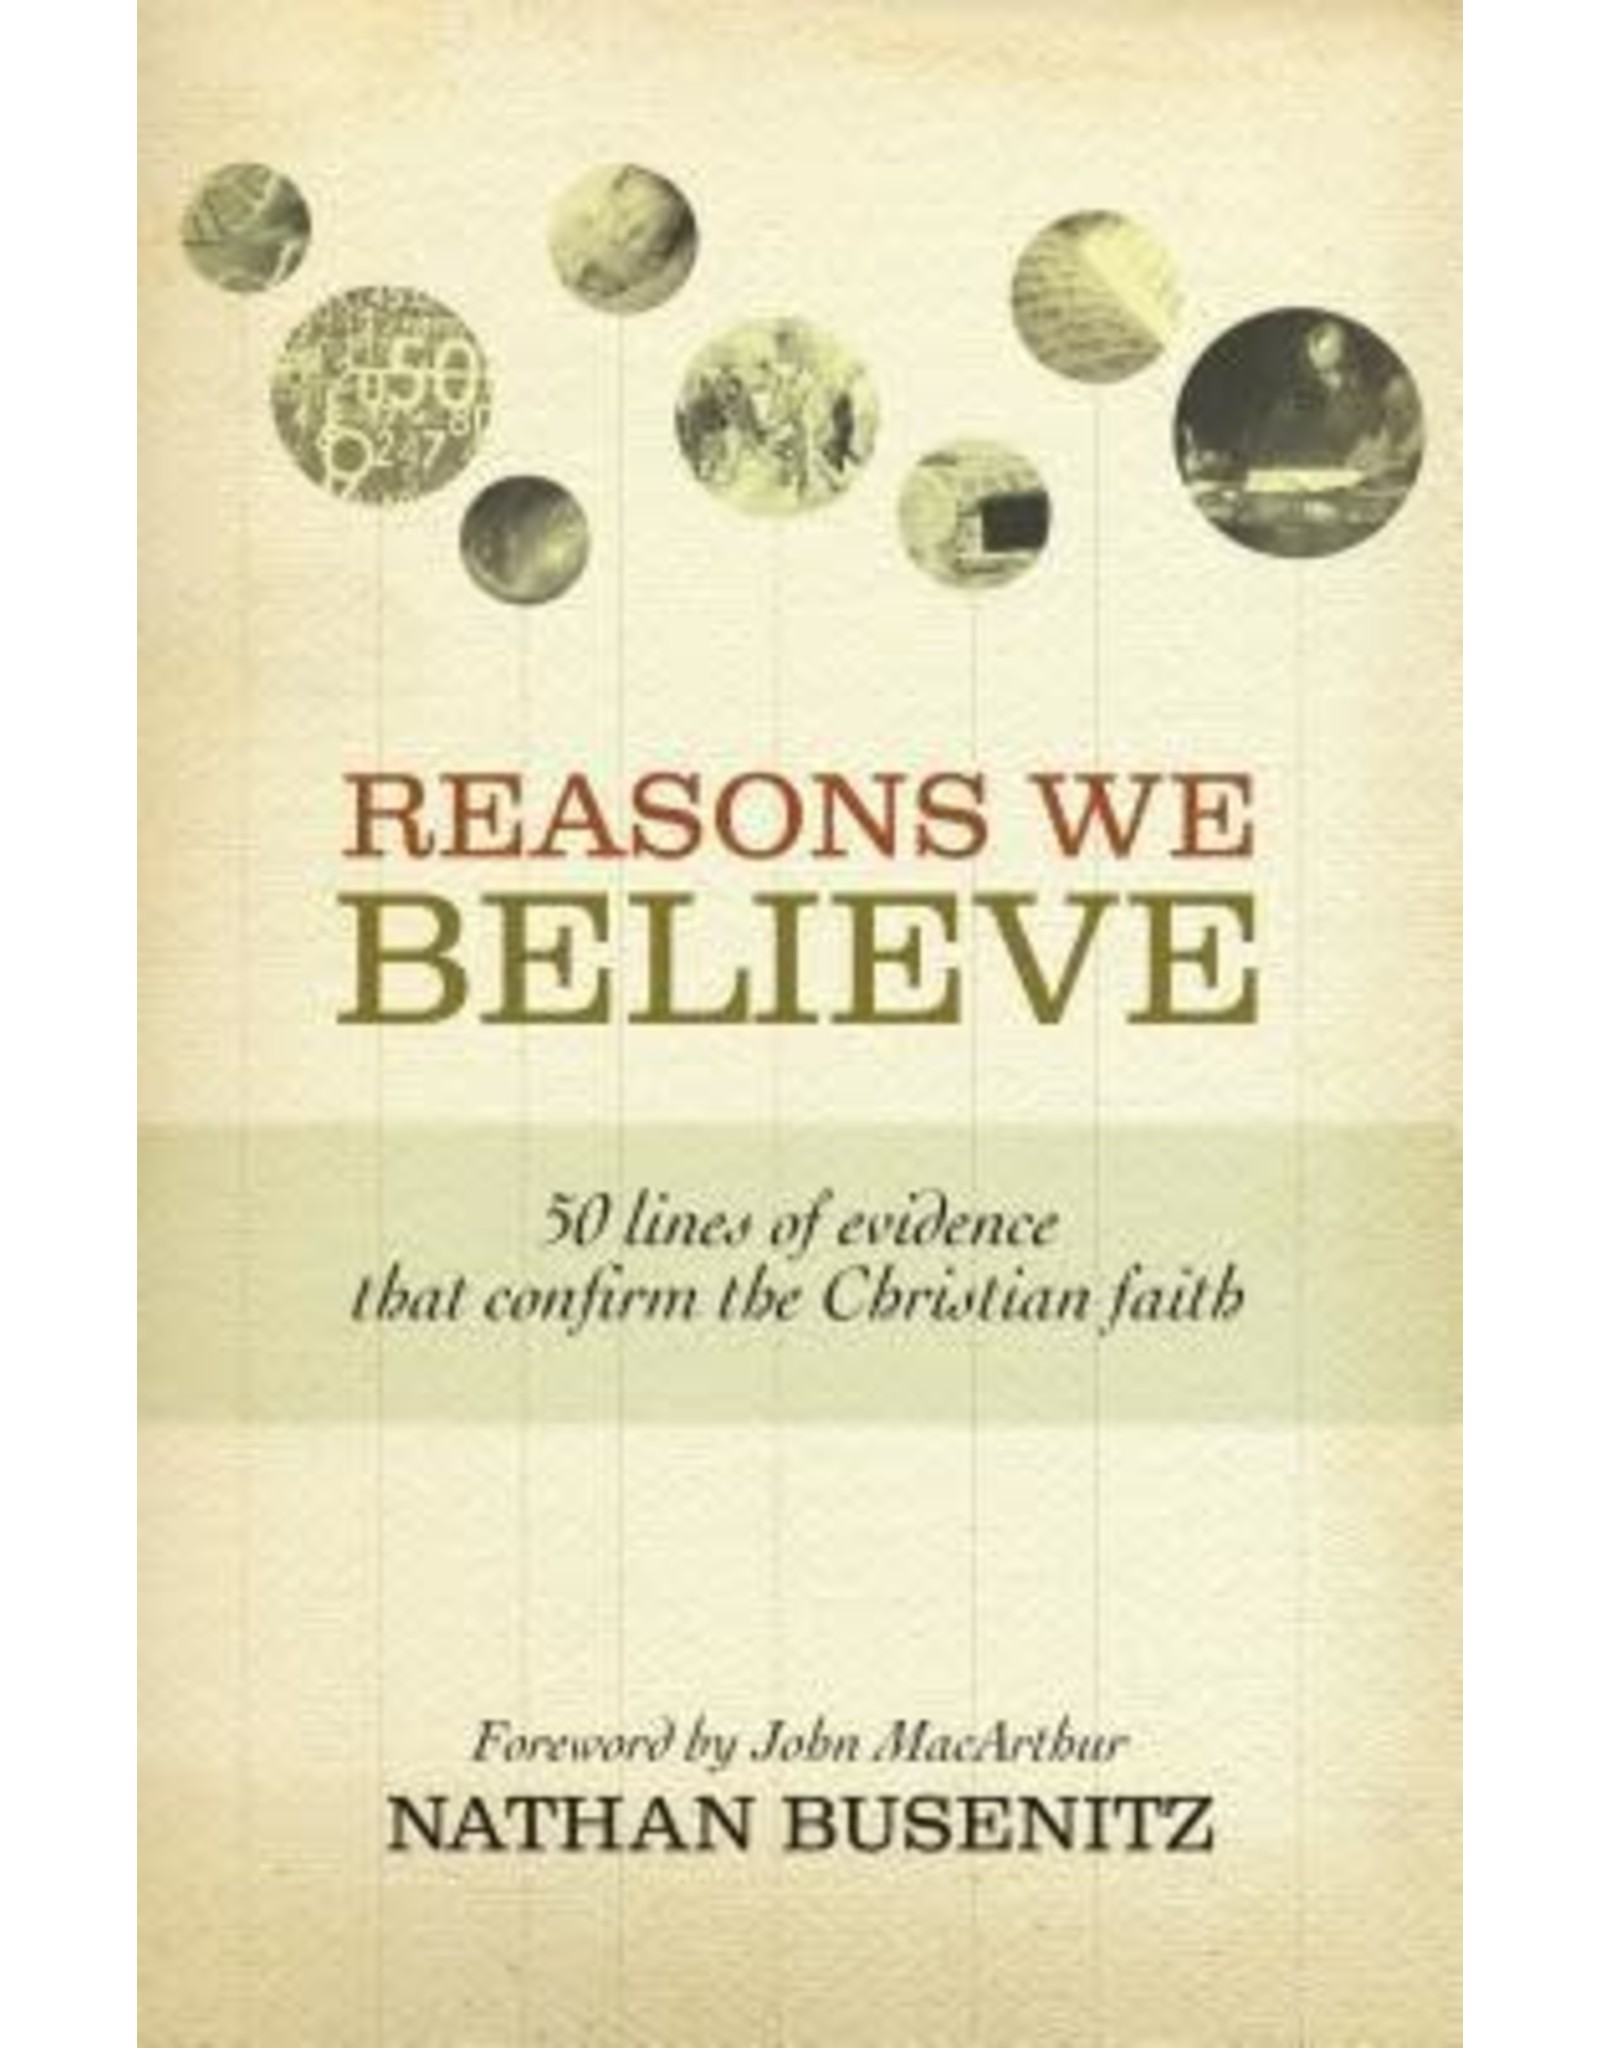 Busenitz Reasons We Believe: 50 Lines of Evidence That Confirm the Christian Faith